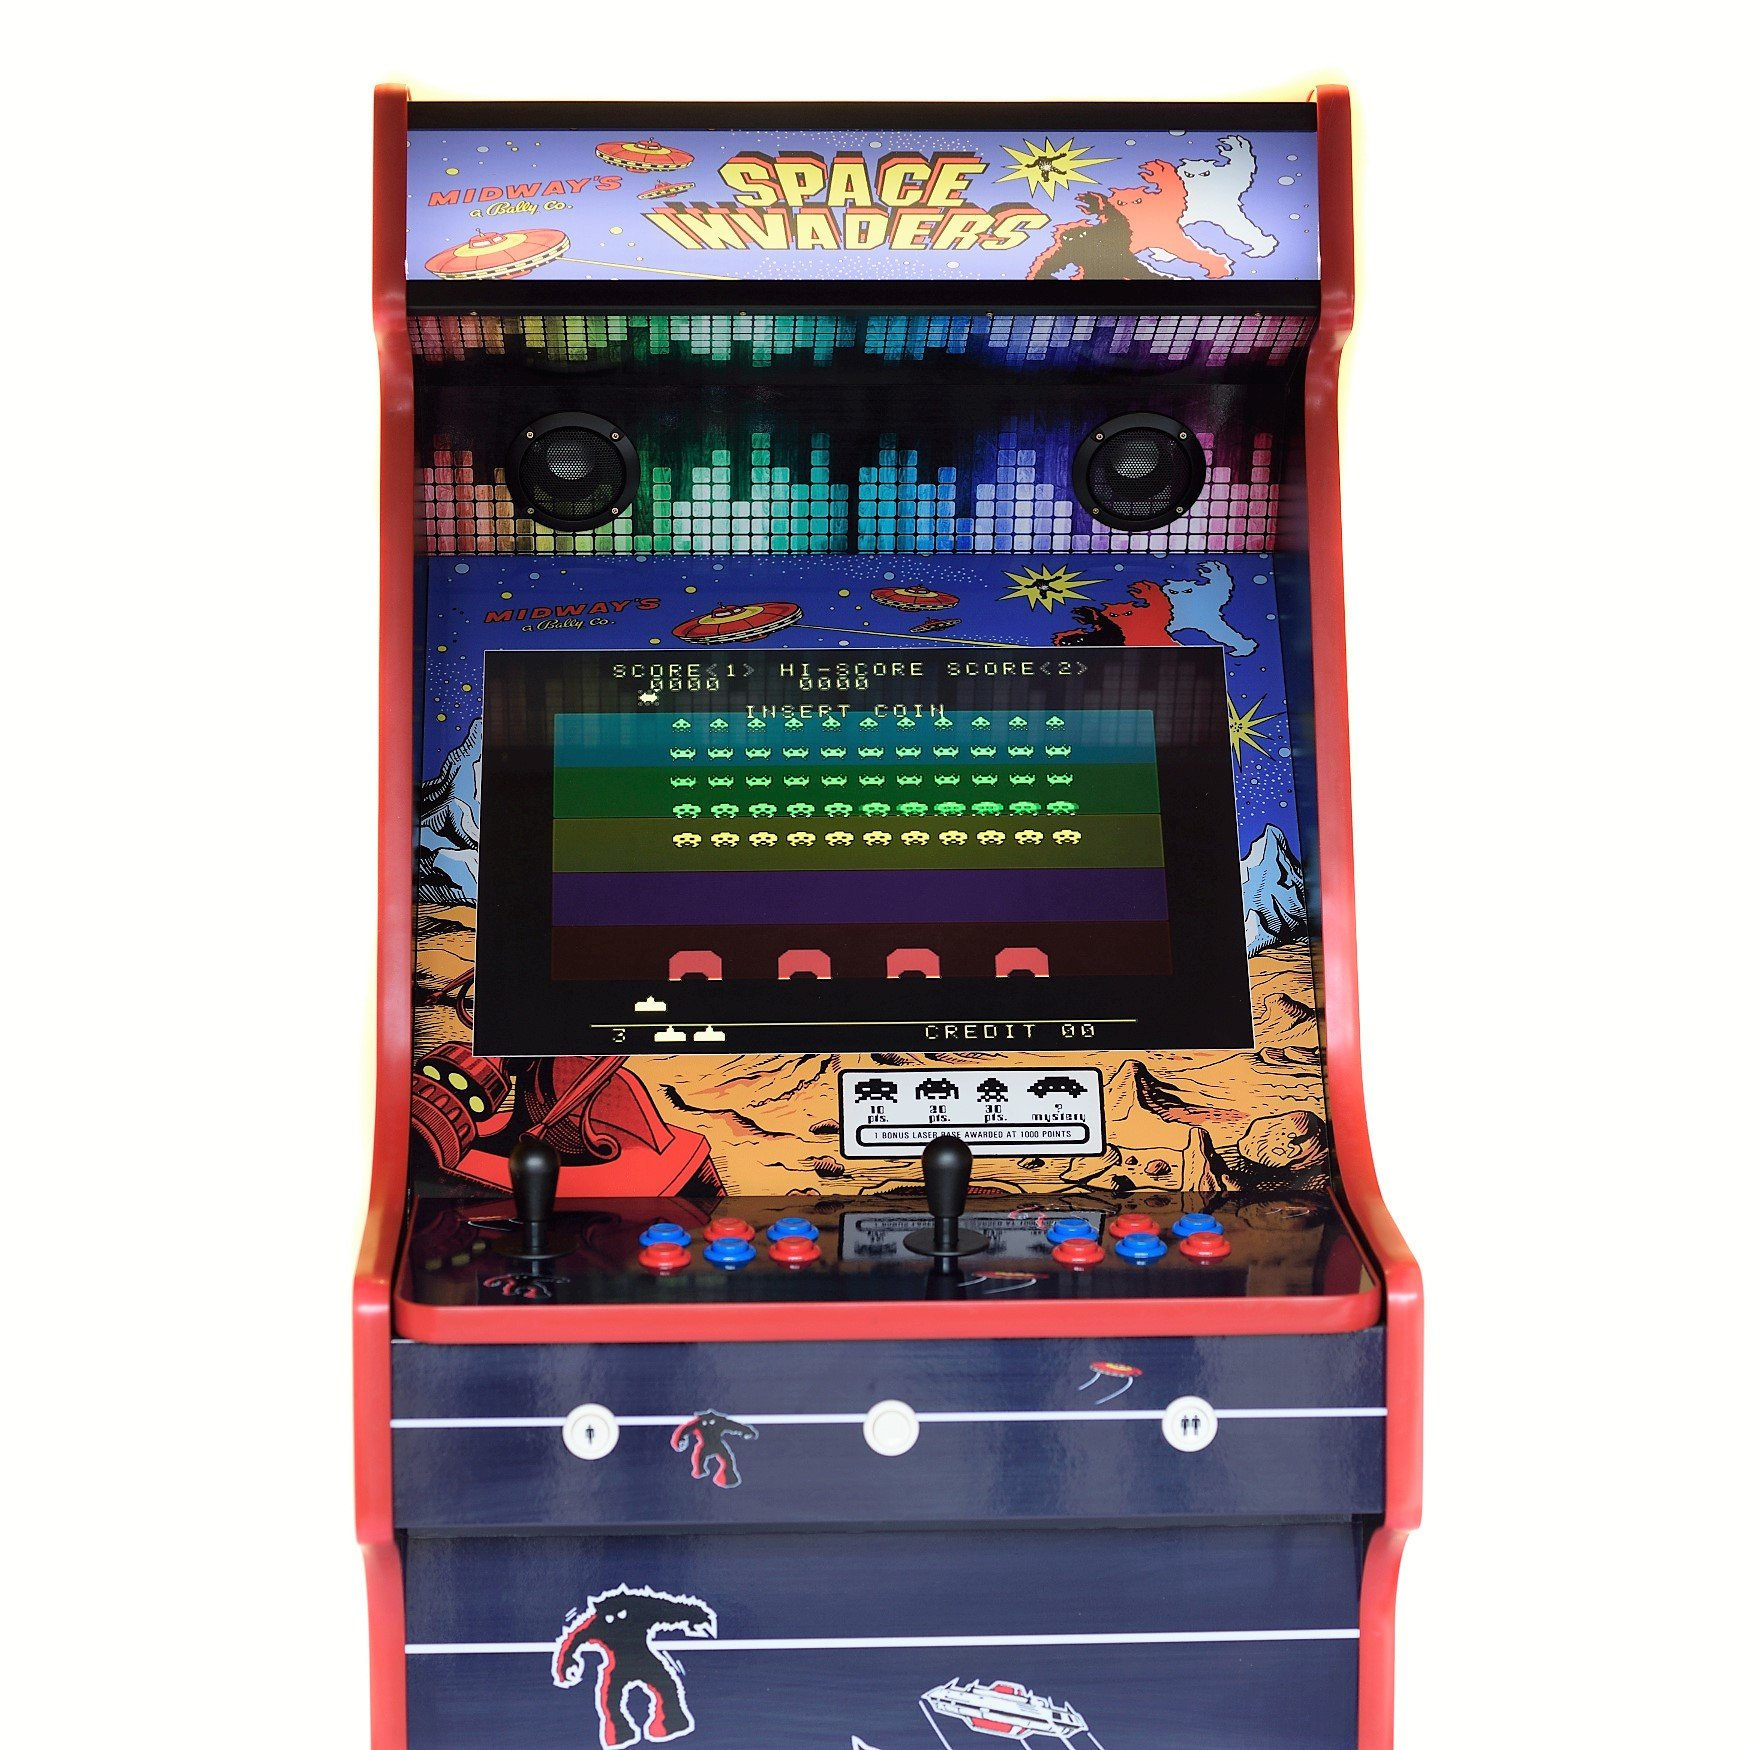 Classic Upright Arcade Machine - Space Invaders Theme middle